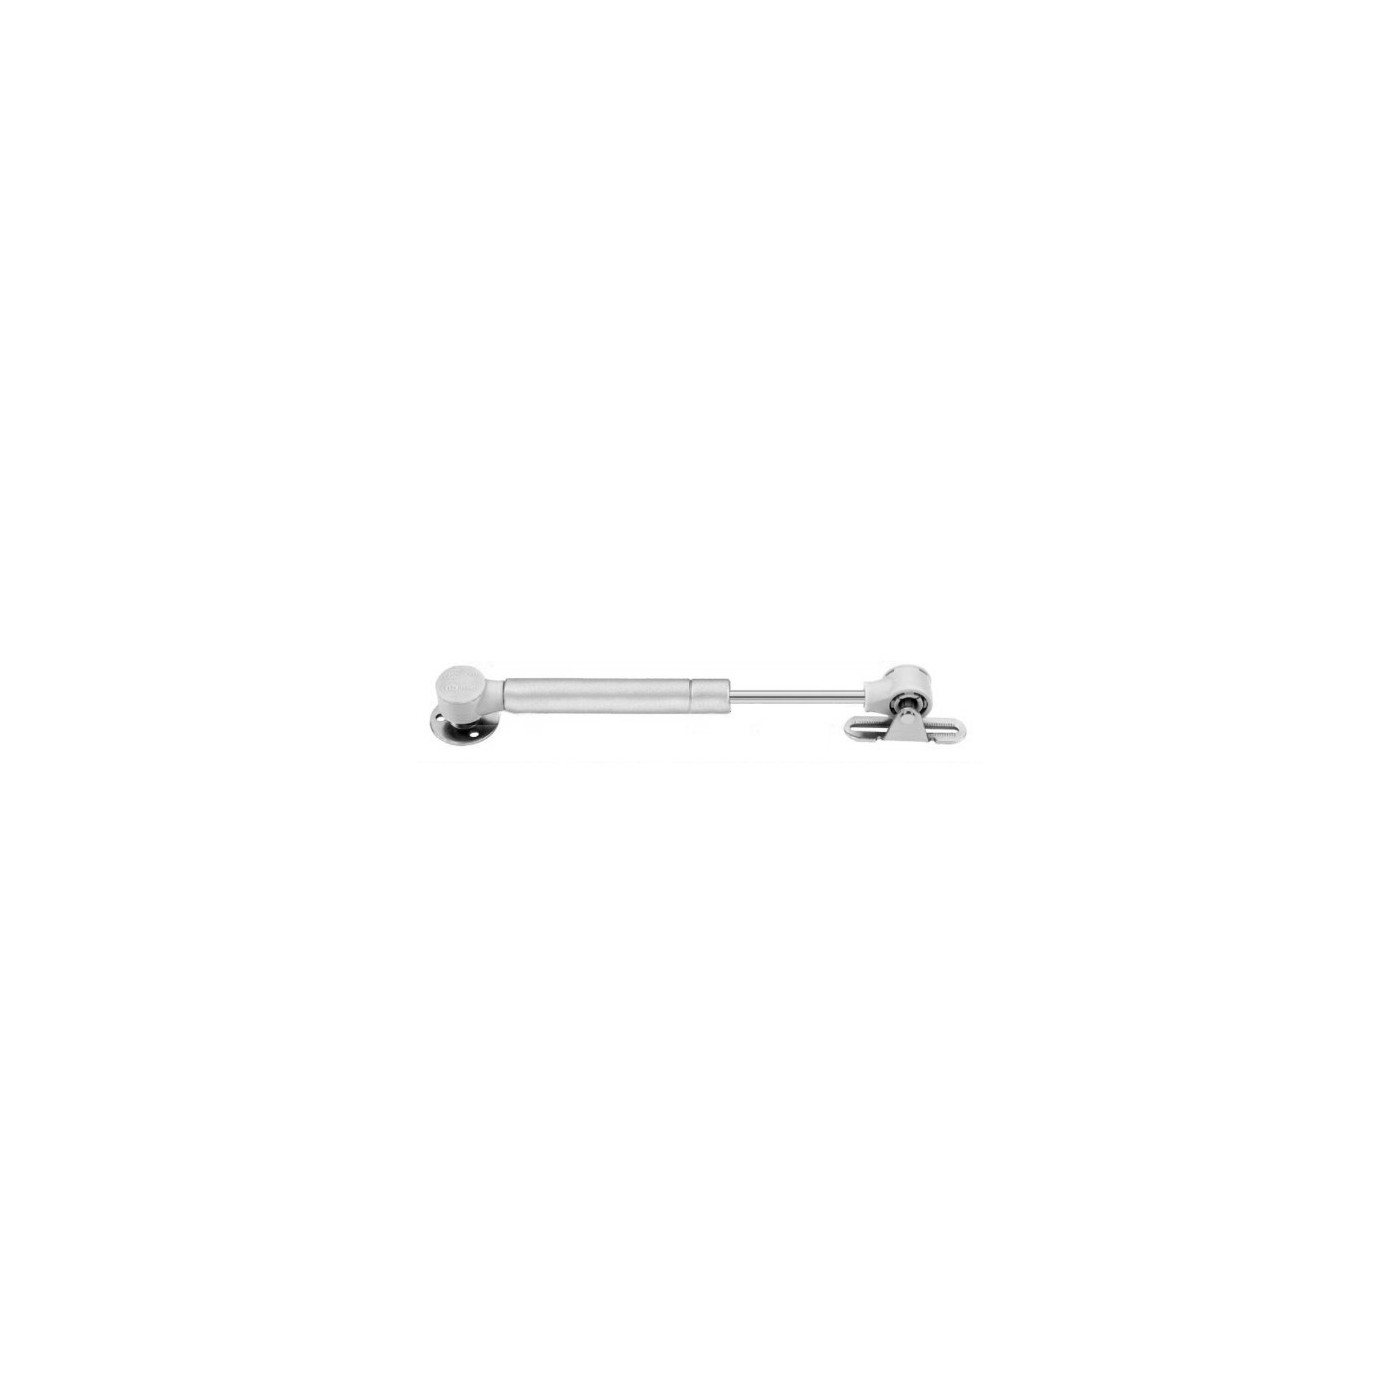 Universal gas spring with brackets (50N/5kg, 172 mm, silver)  - 1